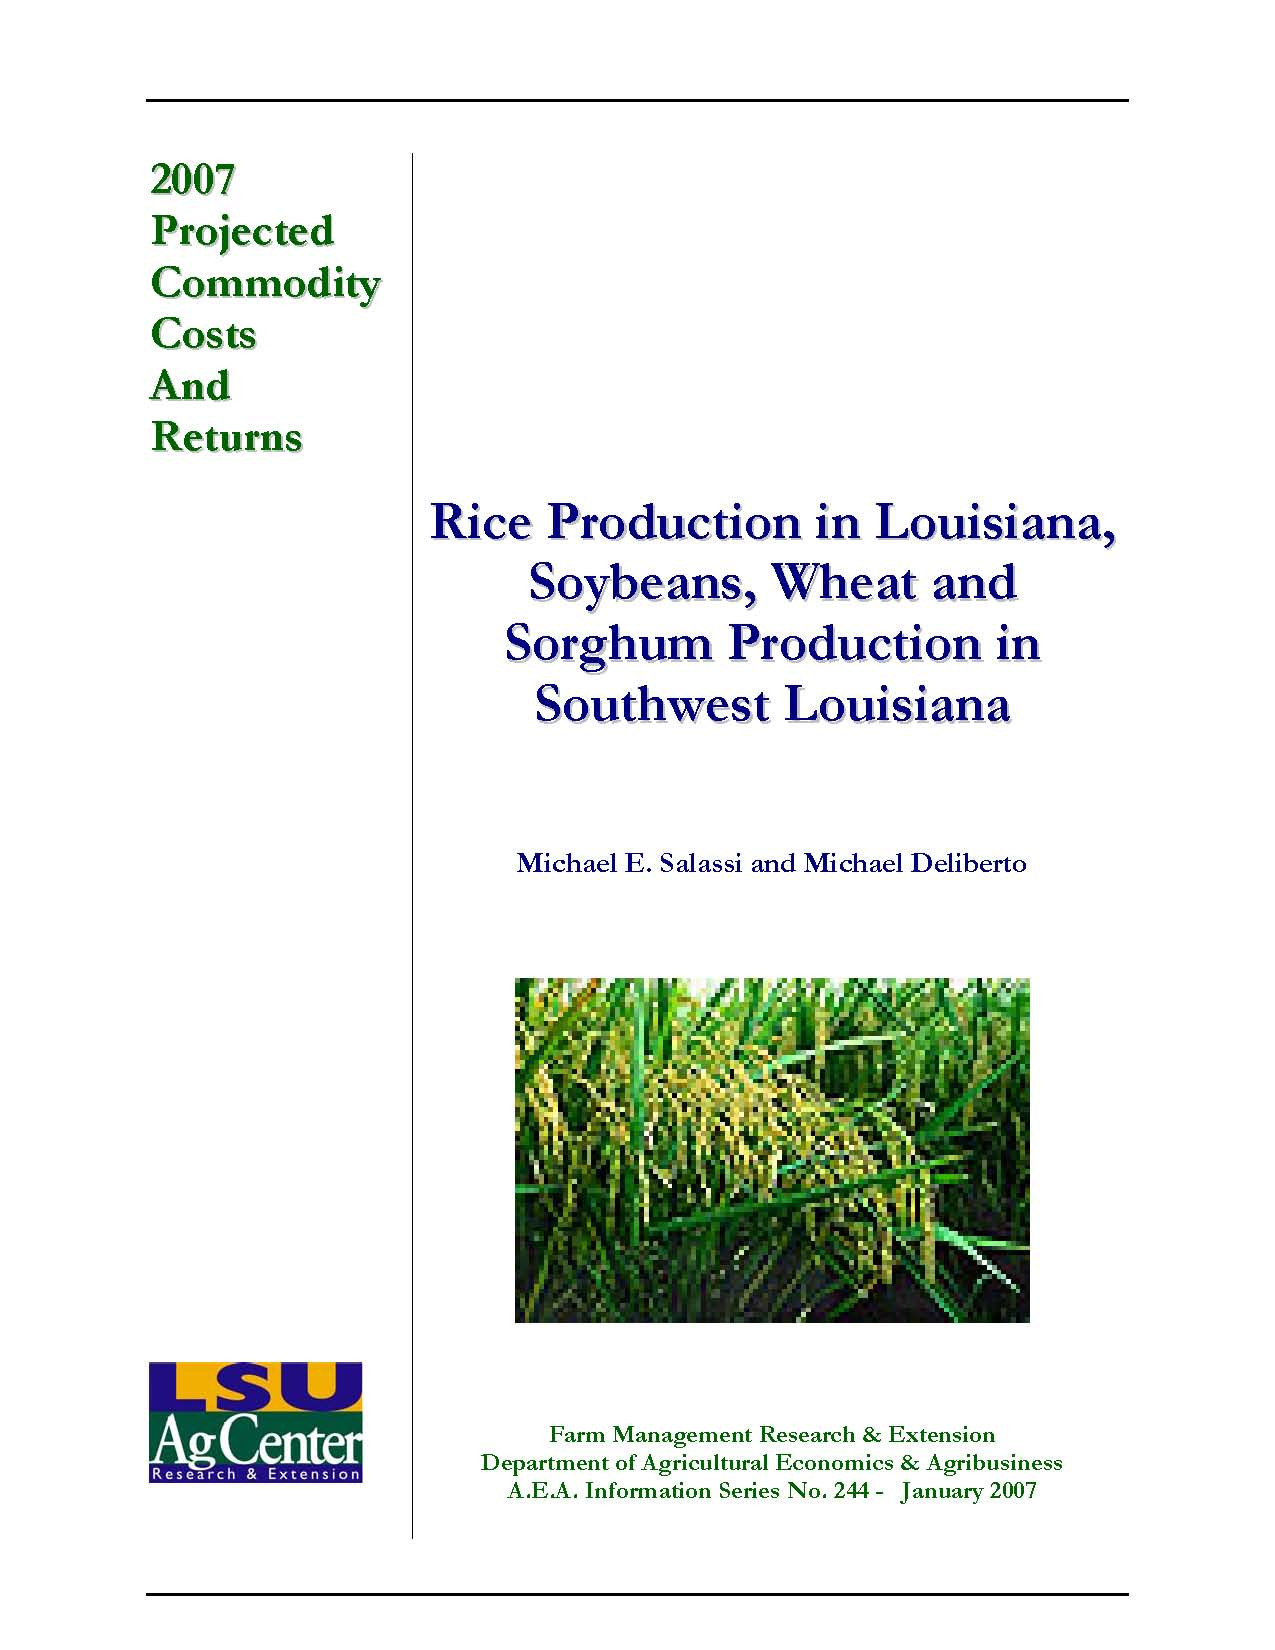 2007 Projected Louisiana Rice Production Costs